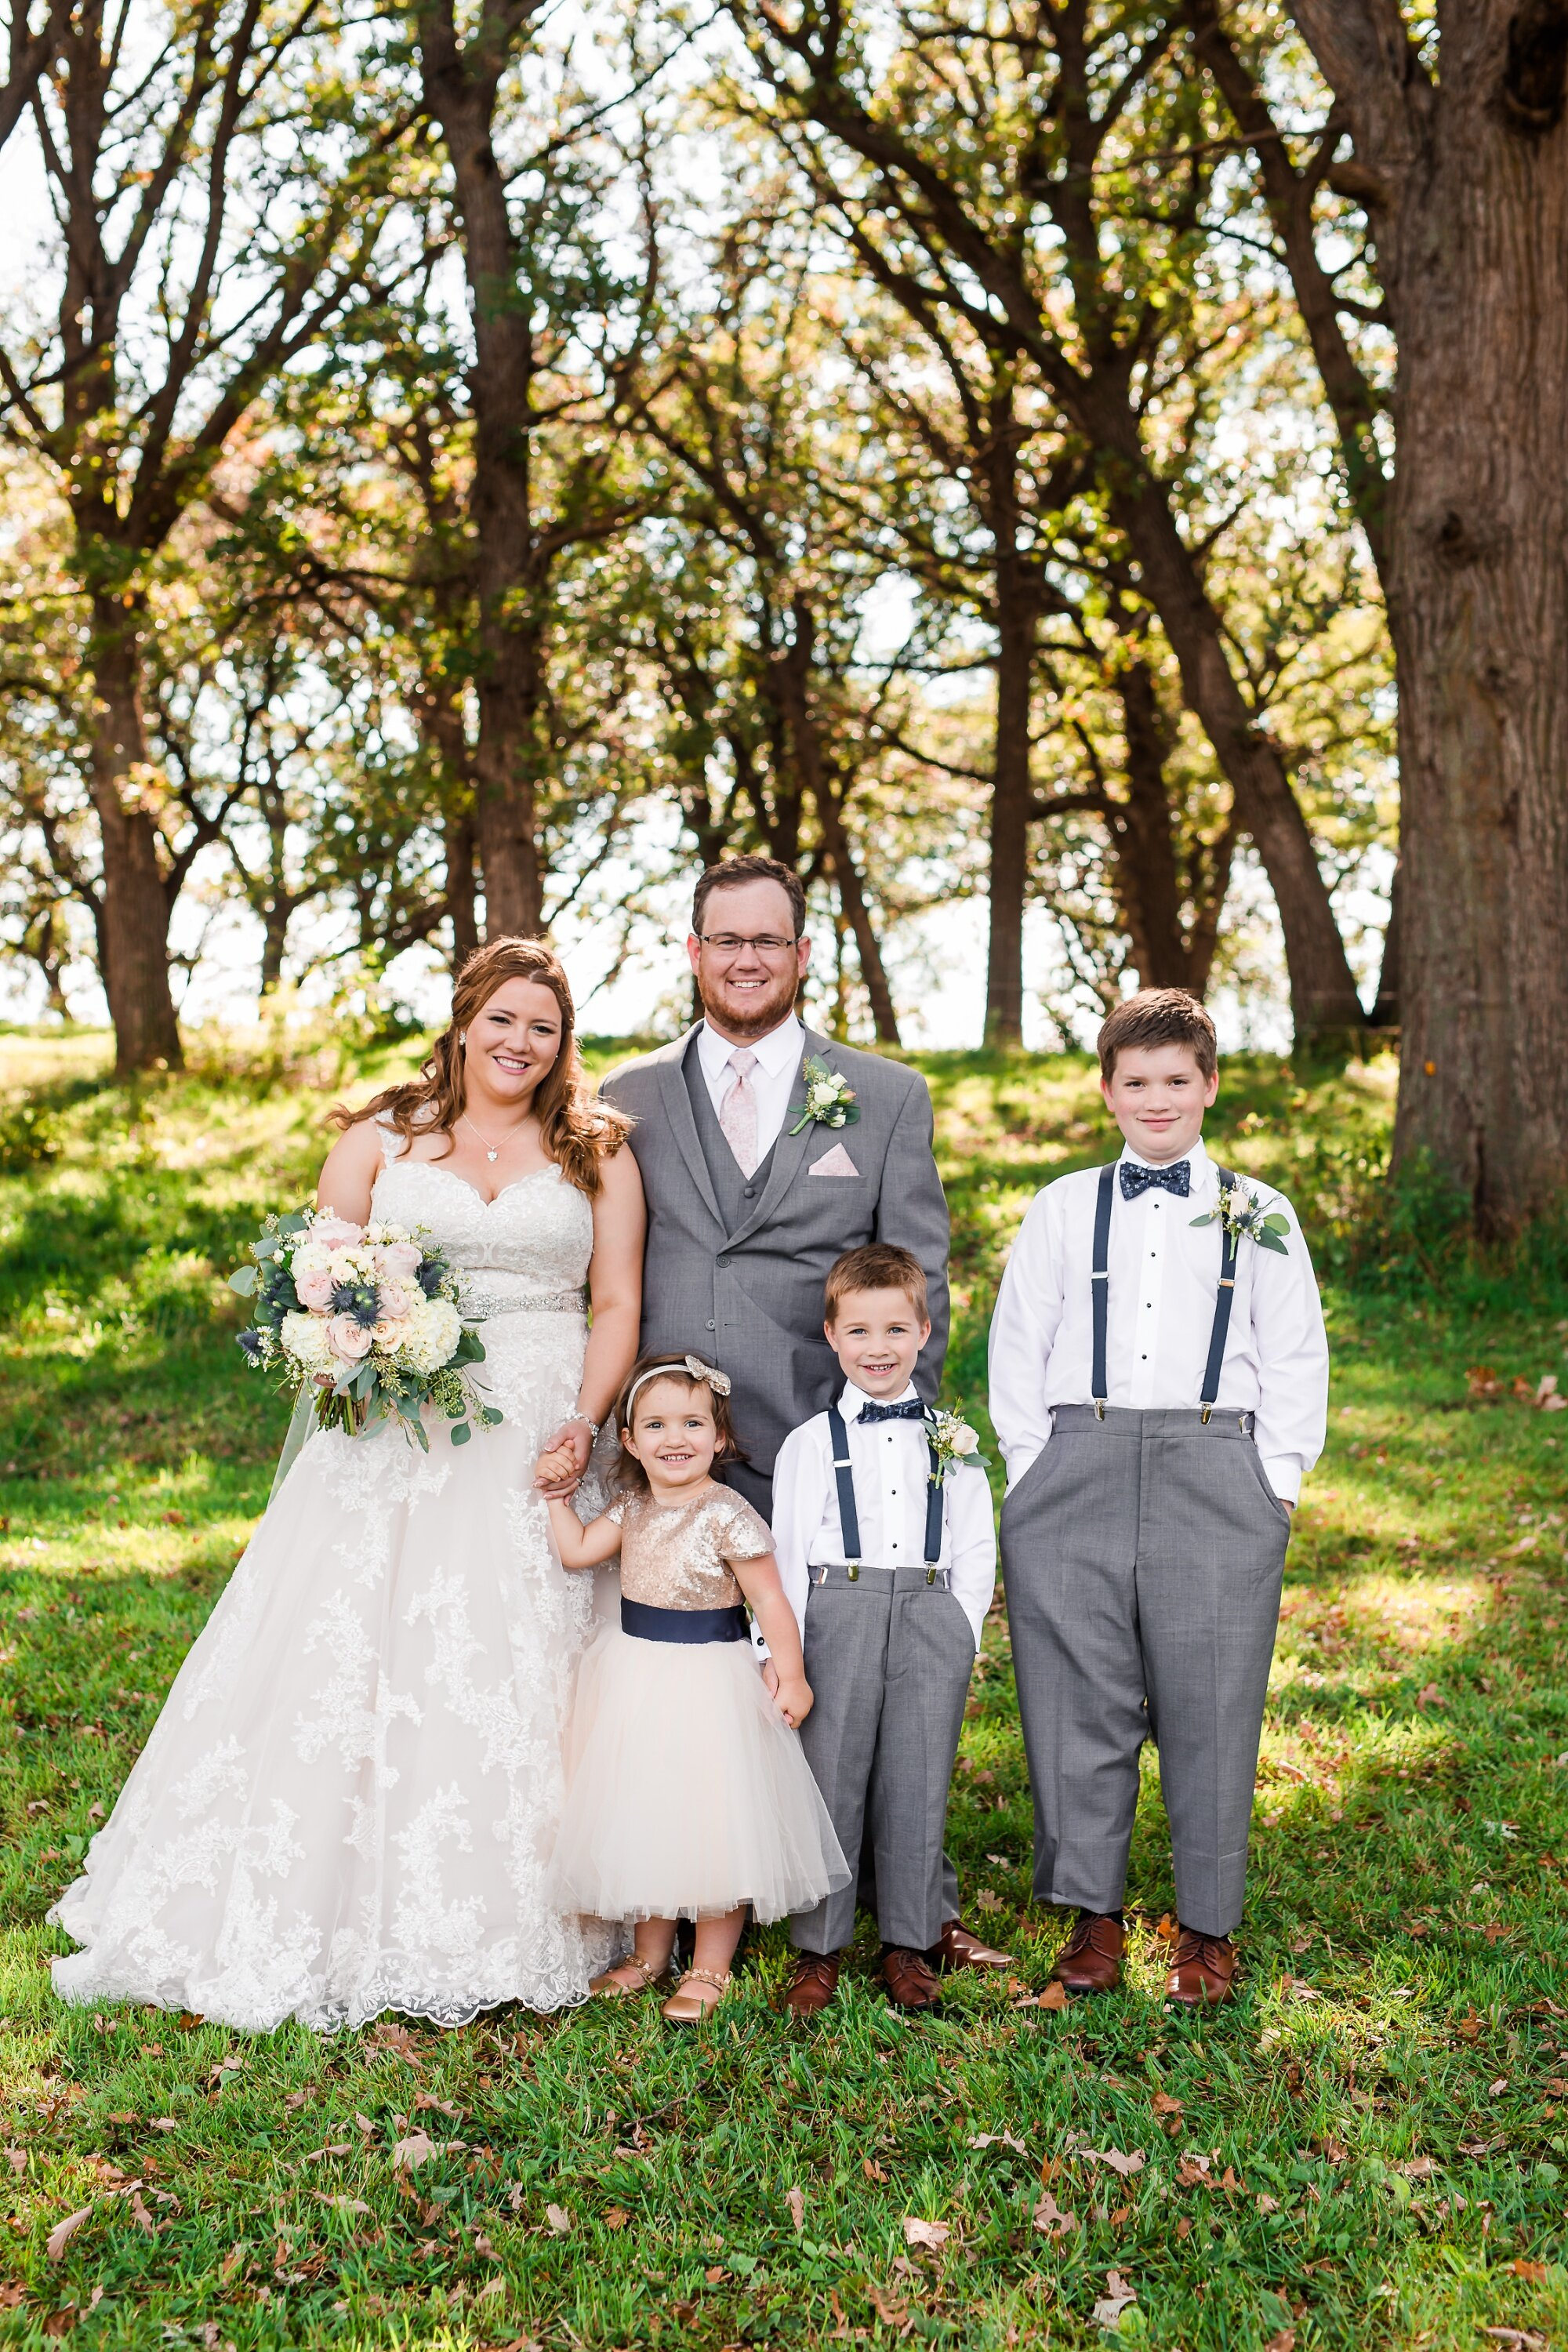 Amber Langerud Photography_Lake Park Minnesota, Outdoor Barn Wedding With Horses_6972.jpg